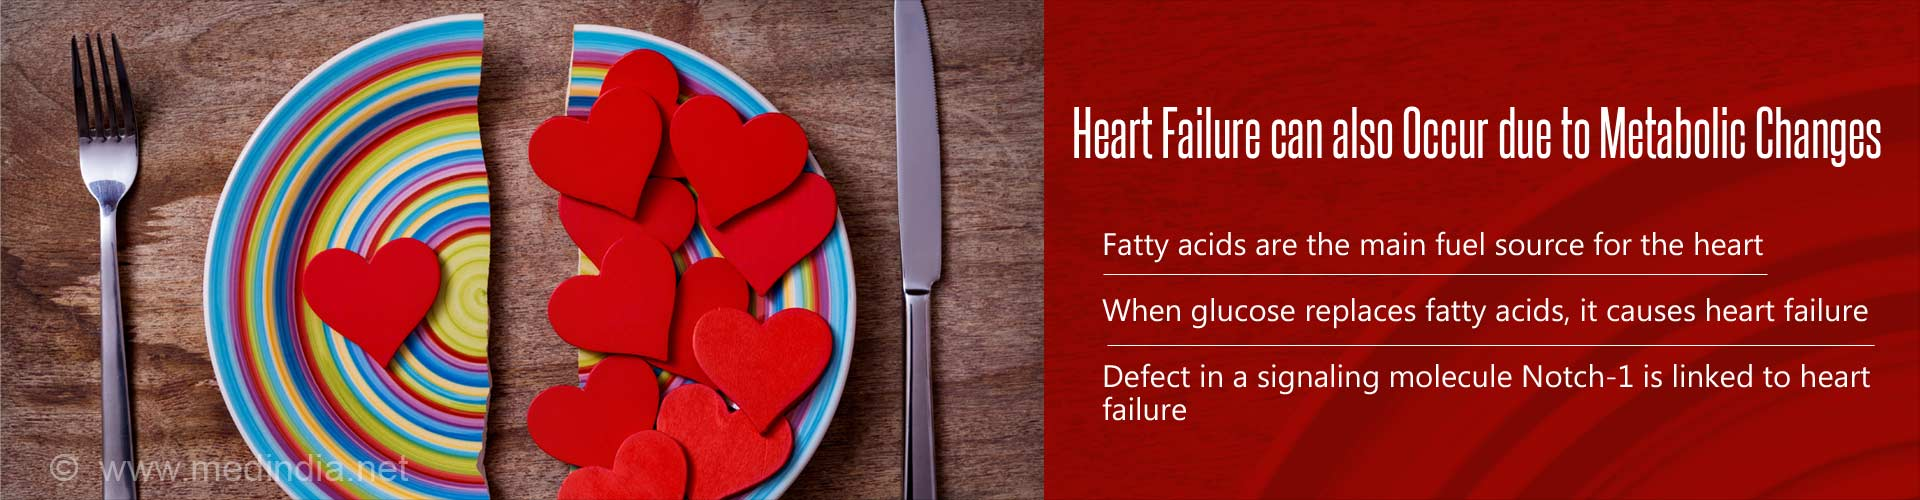 heart failure can also occur due to metabolic changes